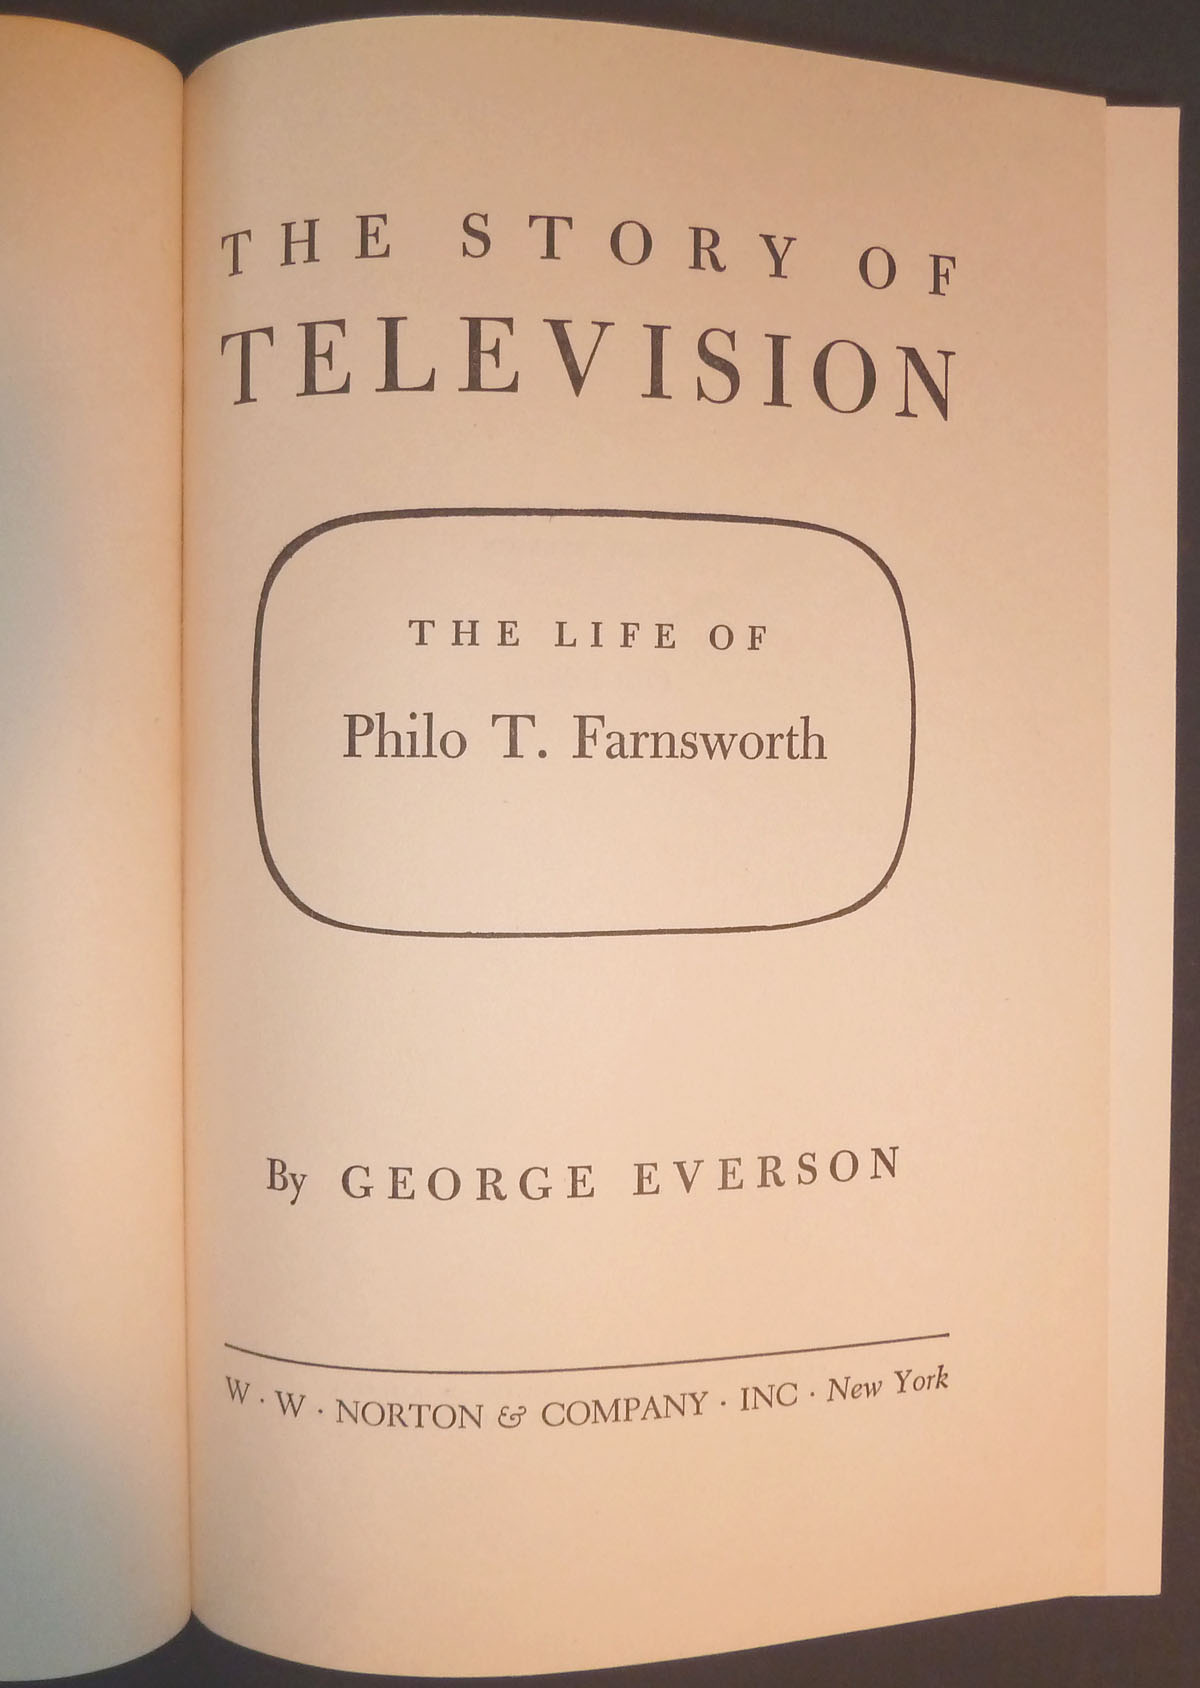 Image for The Story of Television The Life of Philo T. Farnsworth